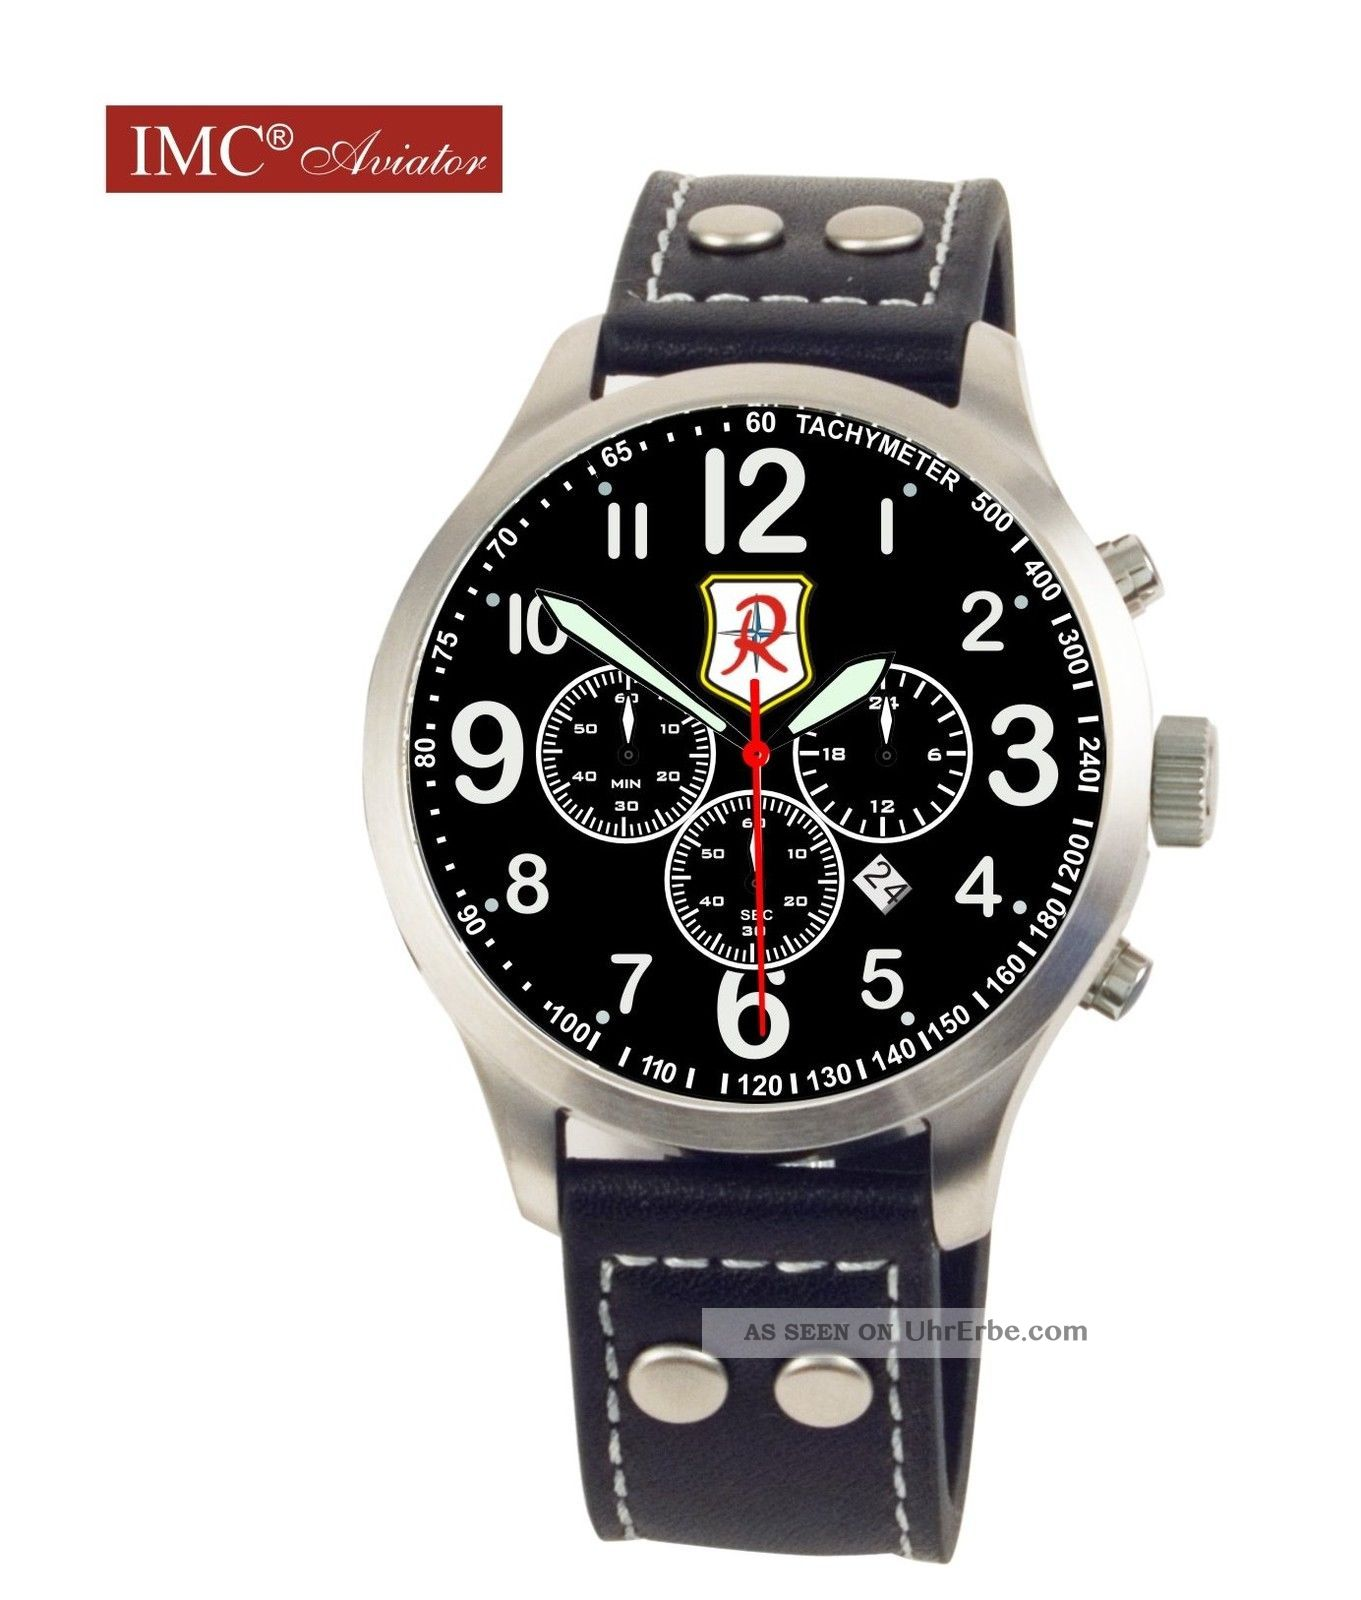 jg 71 uhr aviator chrono armbanduhr sonderedition. Black Bedroom Furniture Sets. Home Design Ideas